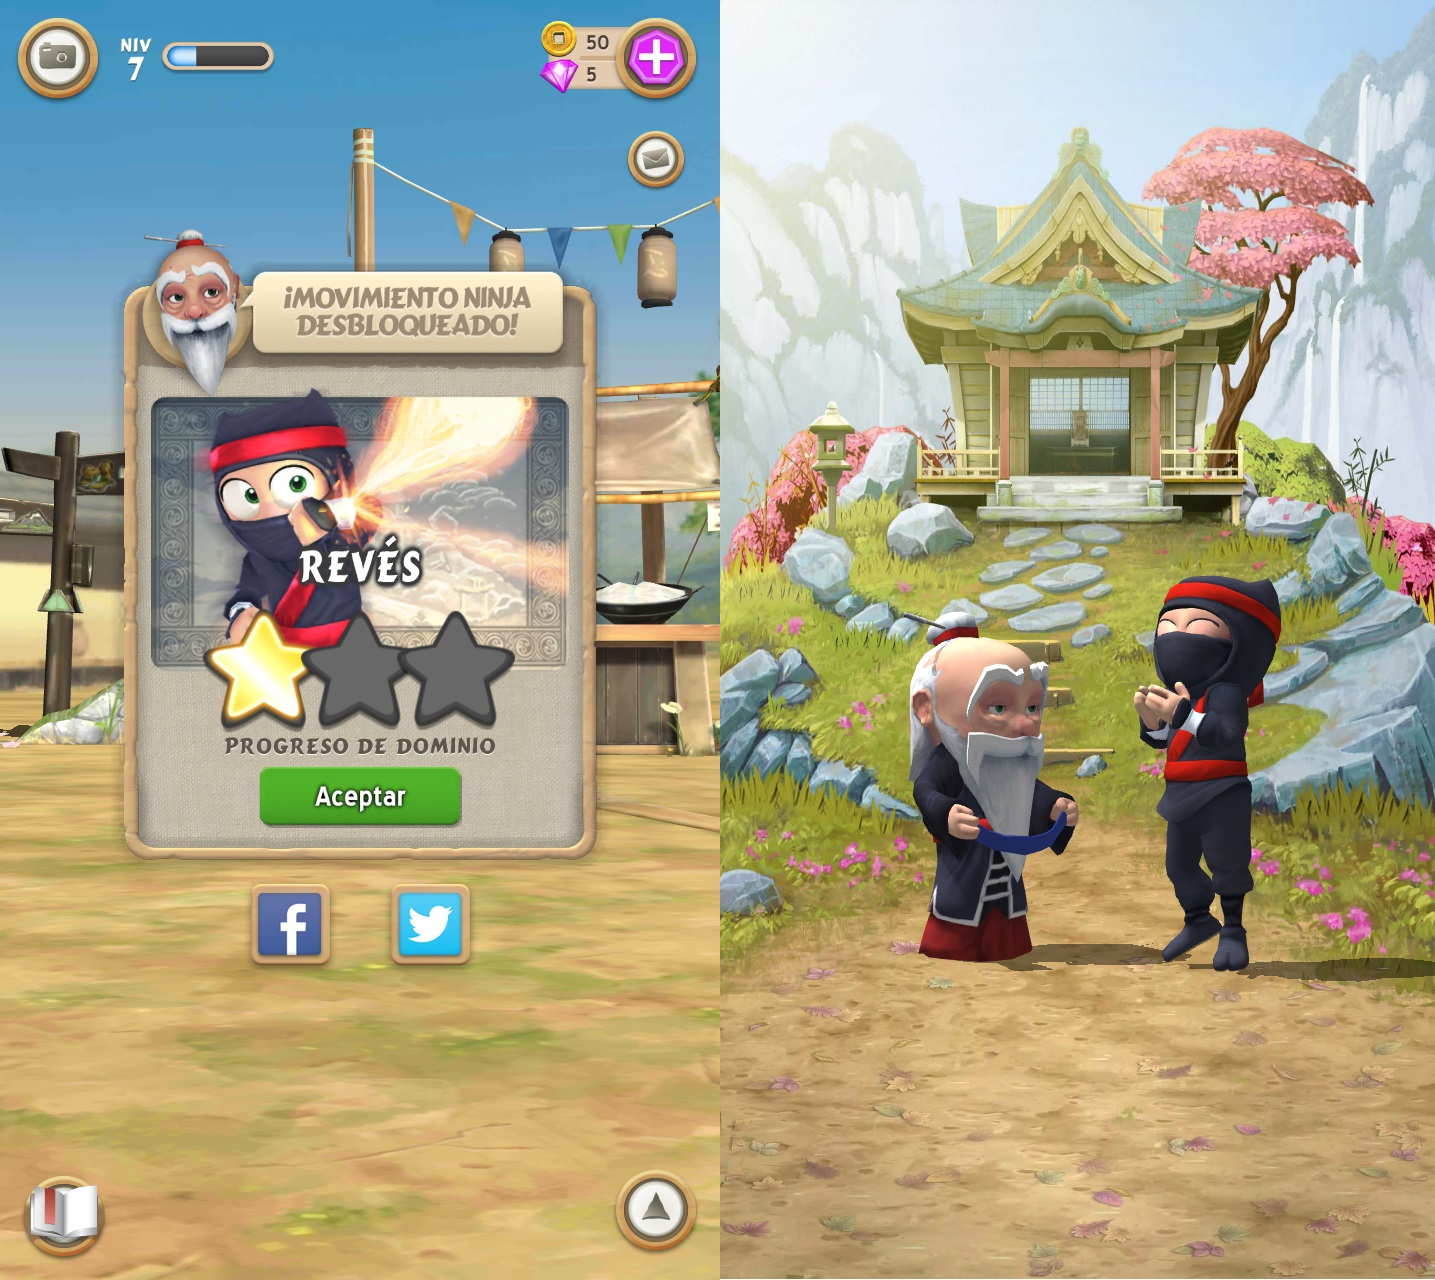 Clumsy Ninja Movimientos